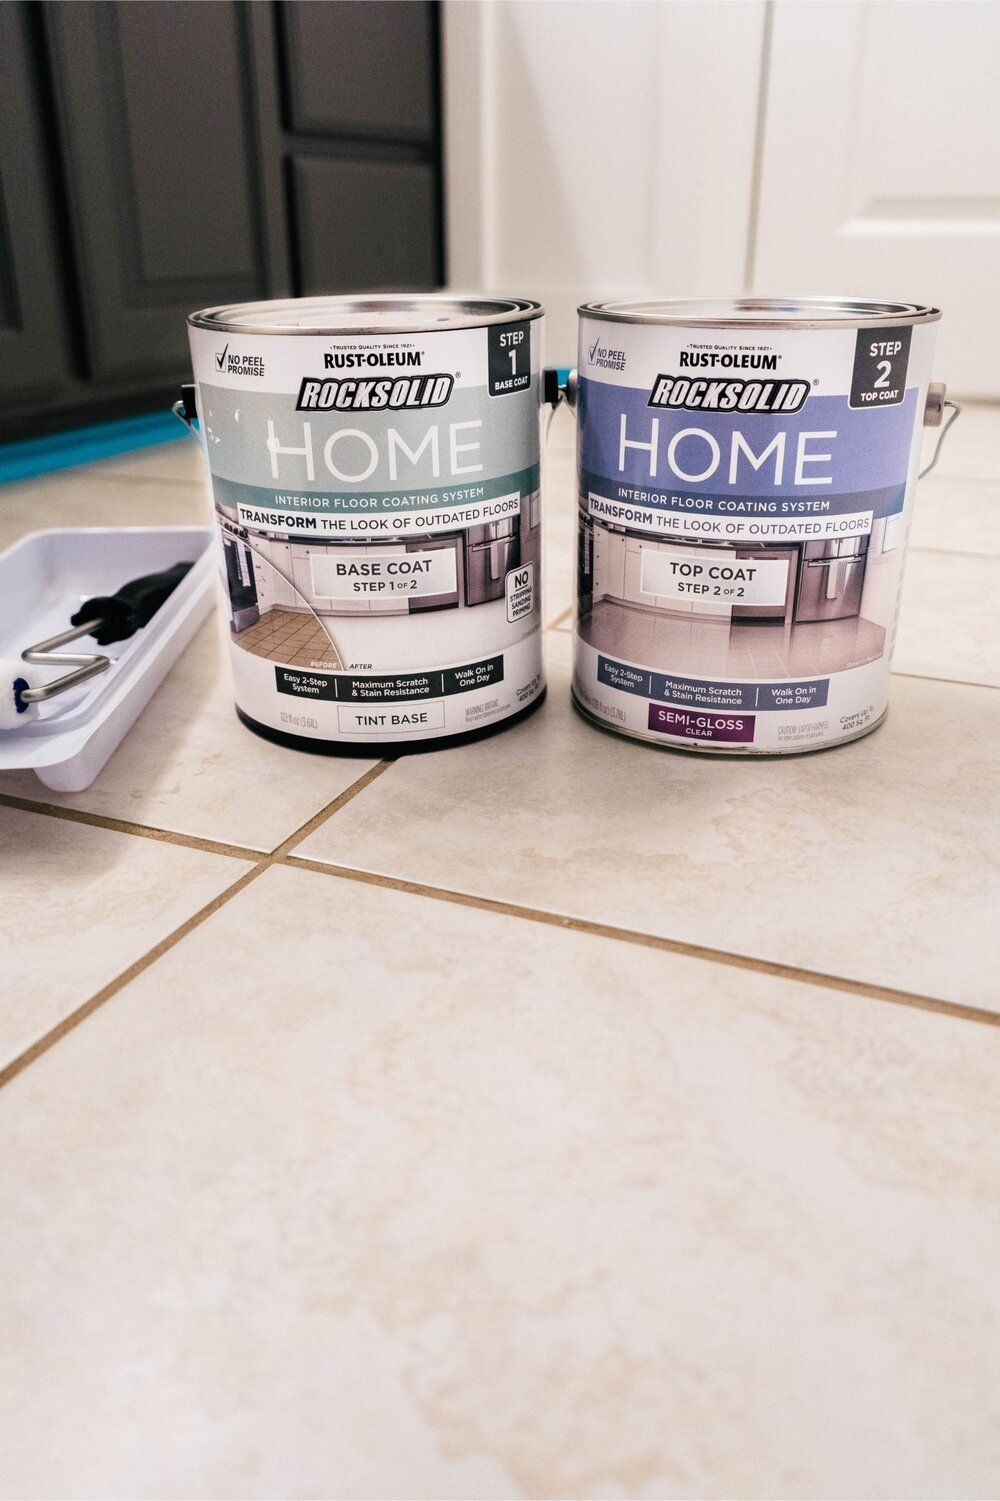 Diy How To Paint Ceramic Floor Tile Painting Ceramic Tile Floor Tile Floor Diy Painting Tile Floors